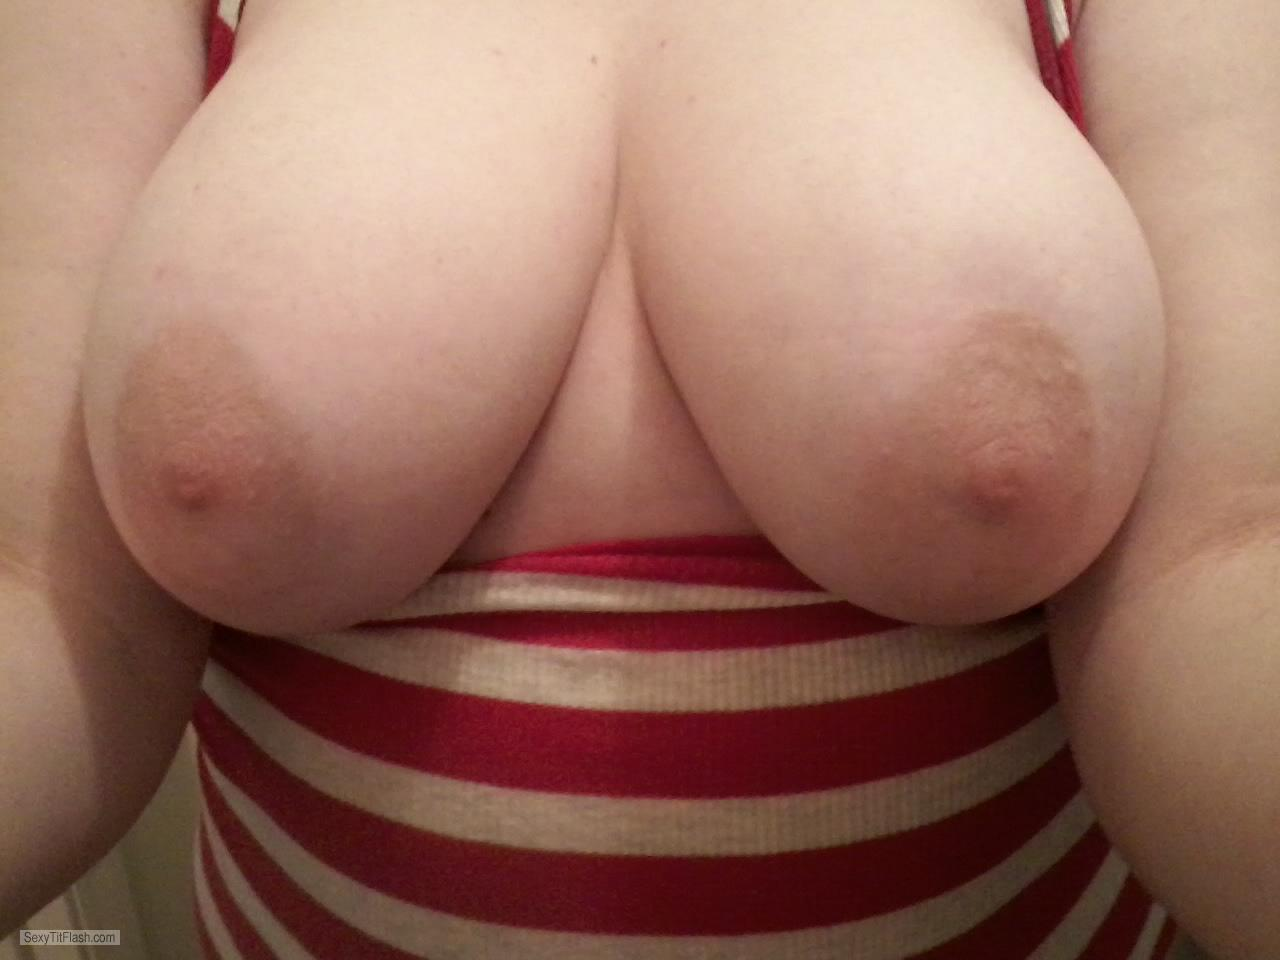 Tit Flash: My Medium Tits (Selfie) - Lemoncake from United States